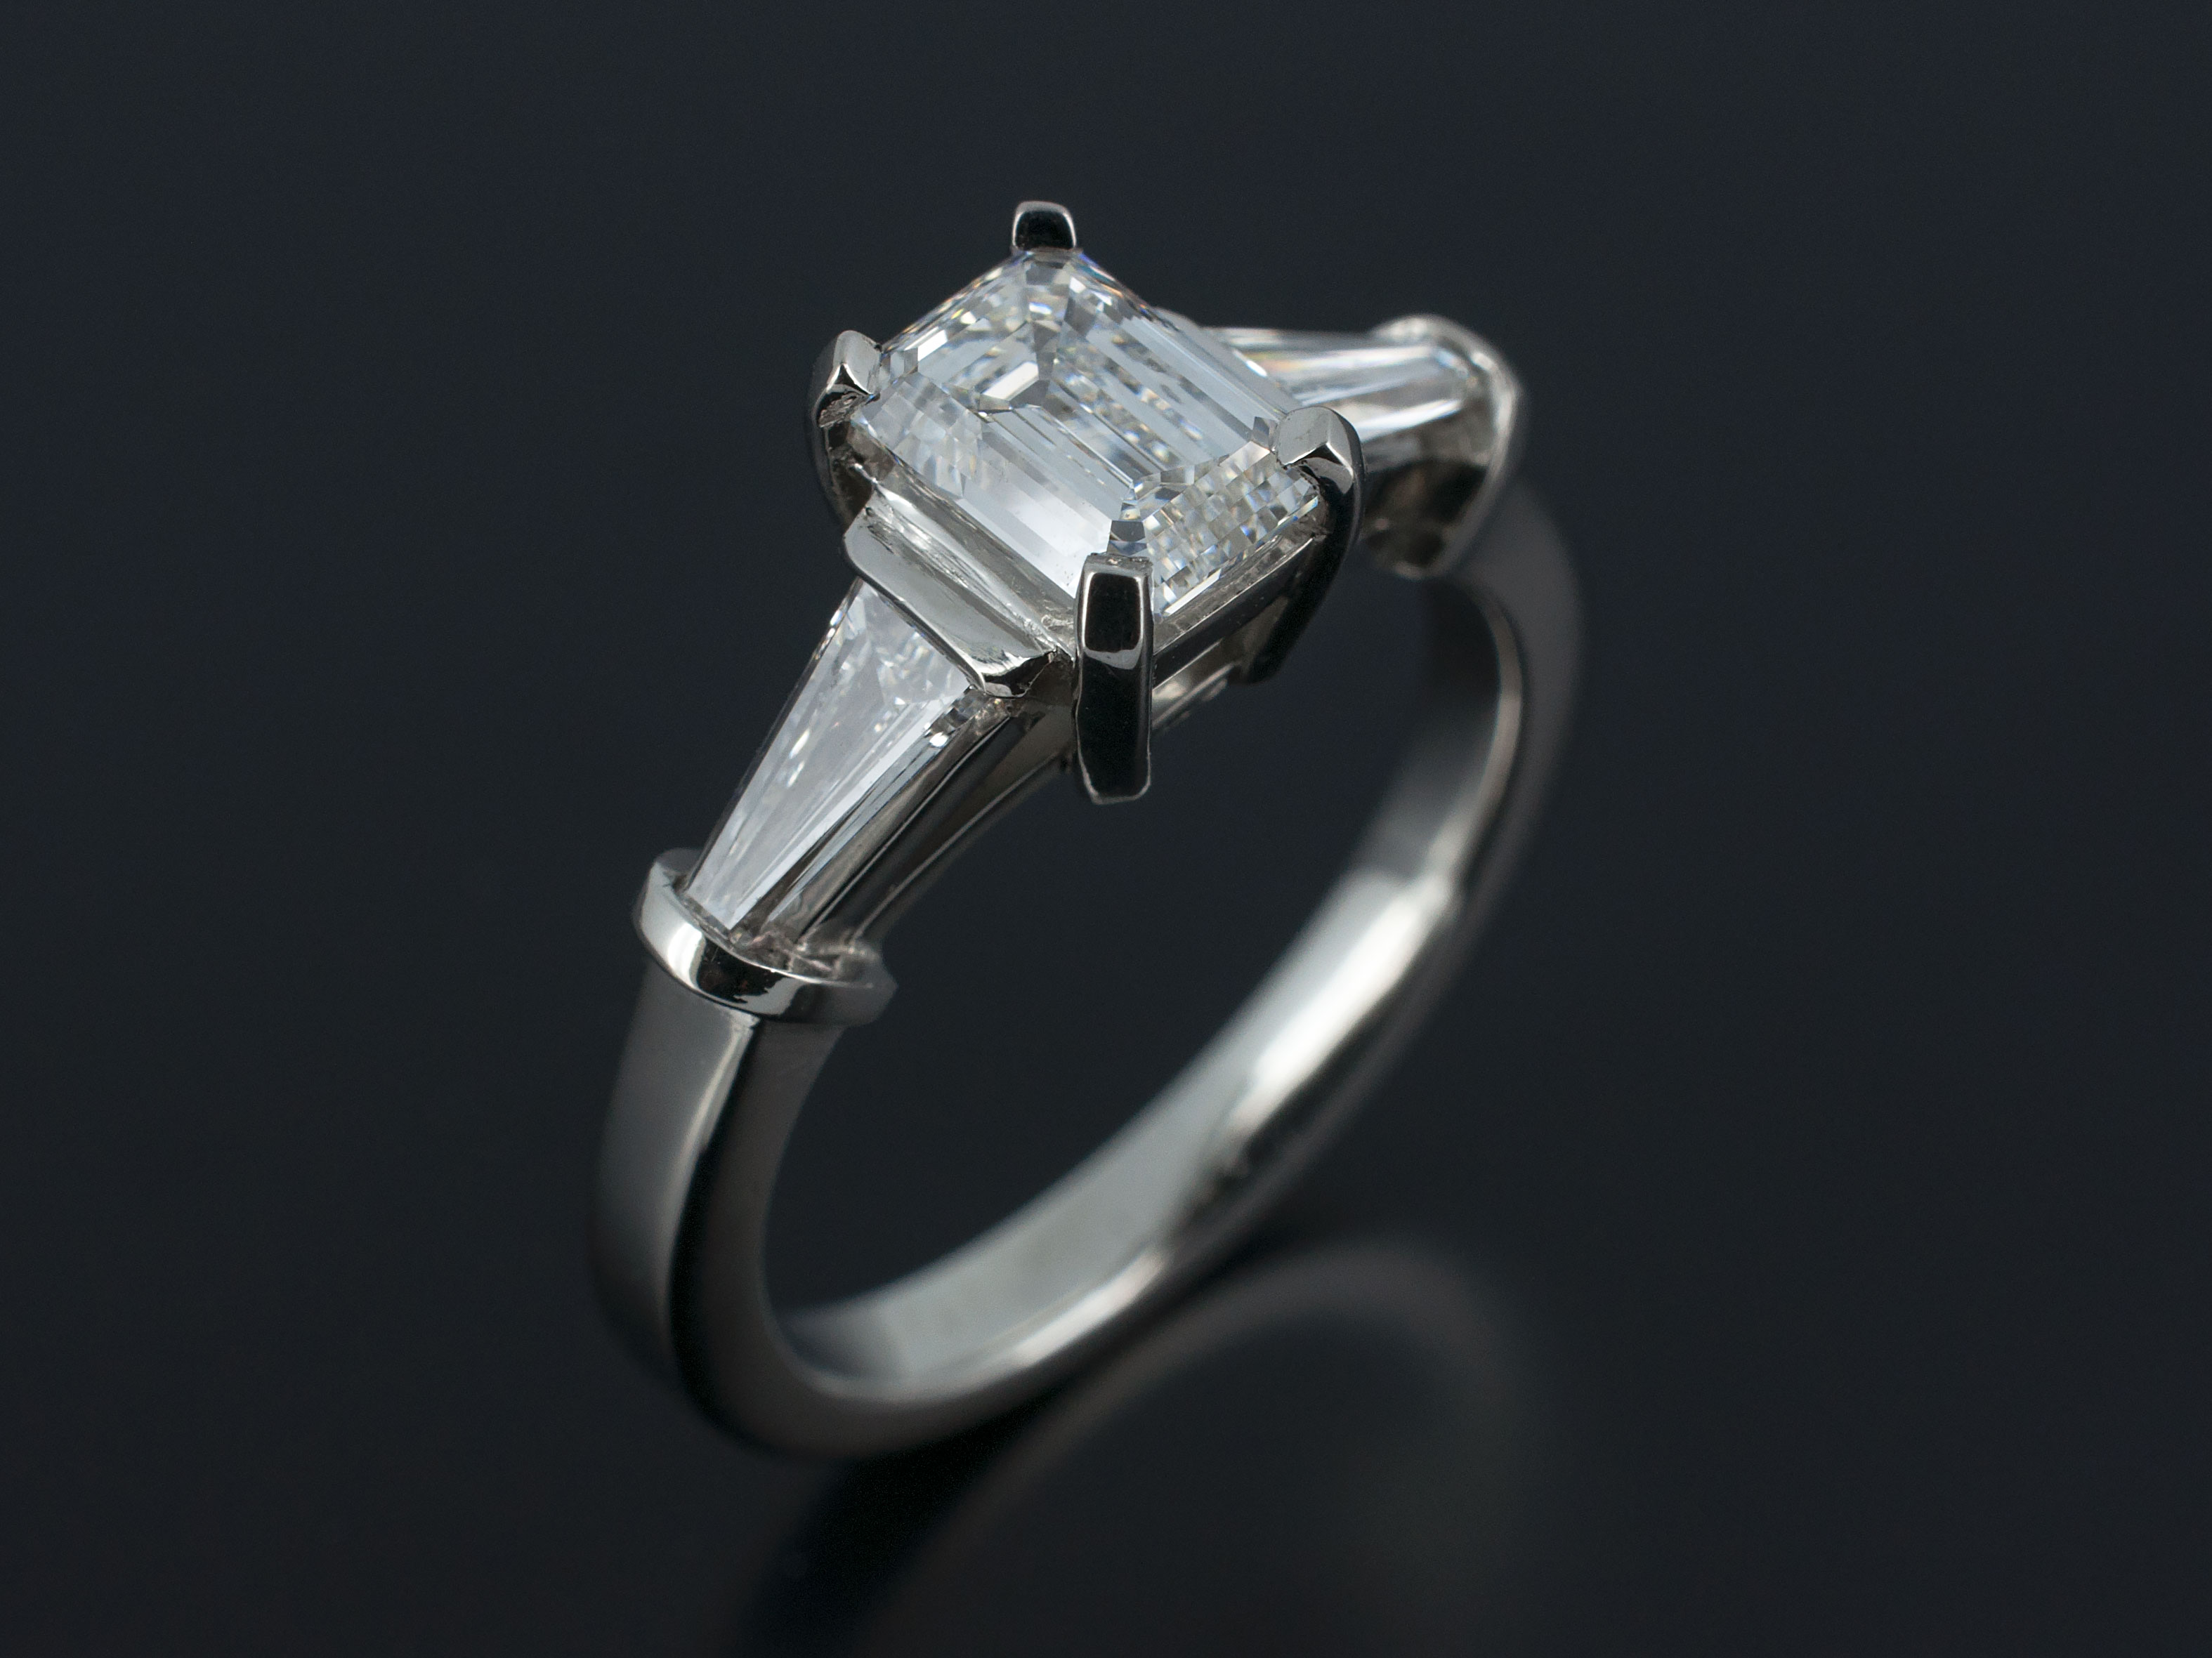 engagement dsc blog diamond princess diamonds ring bespoke cut aurus classic vintage design rings